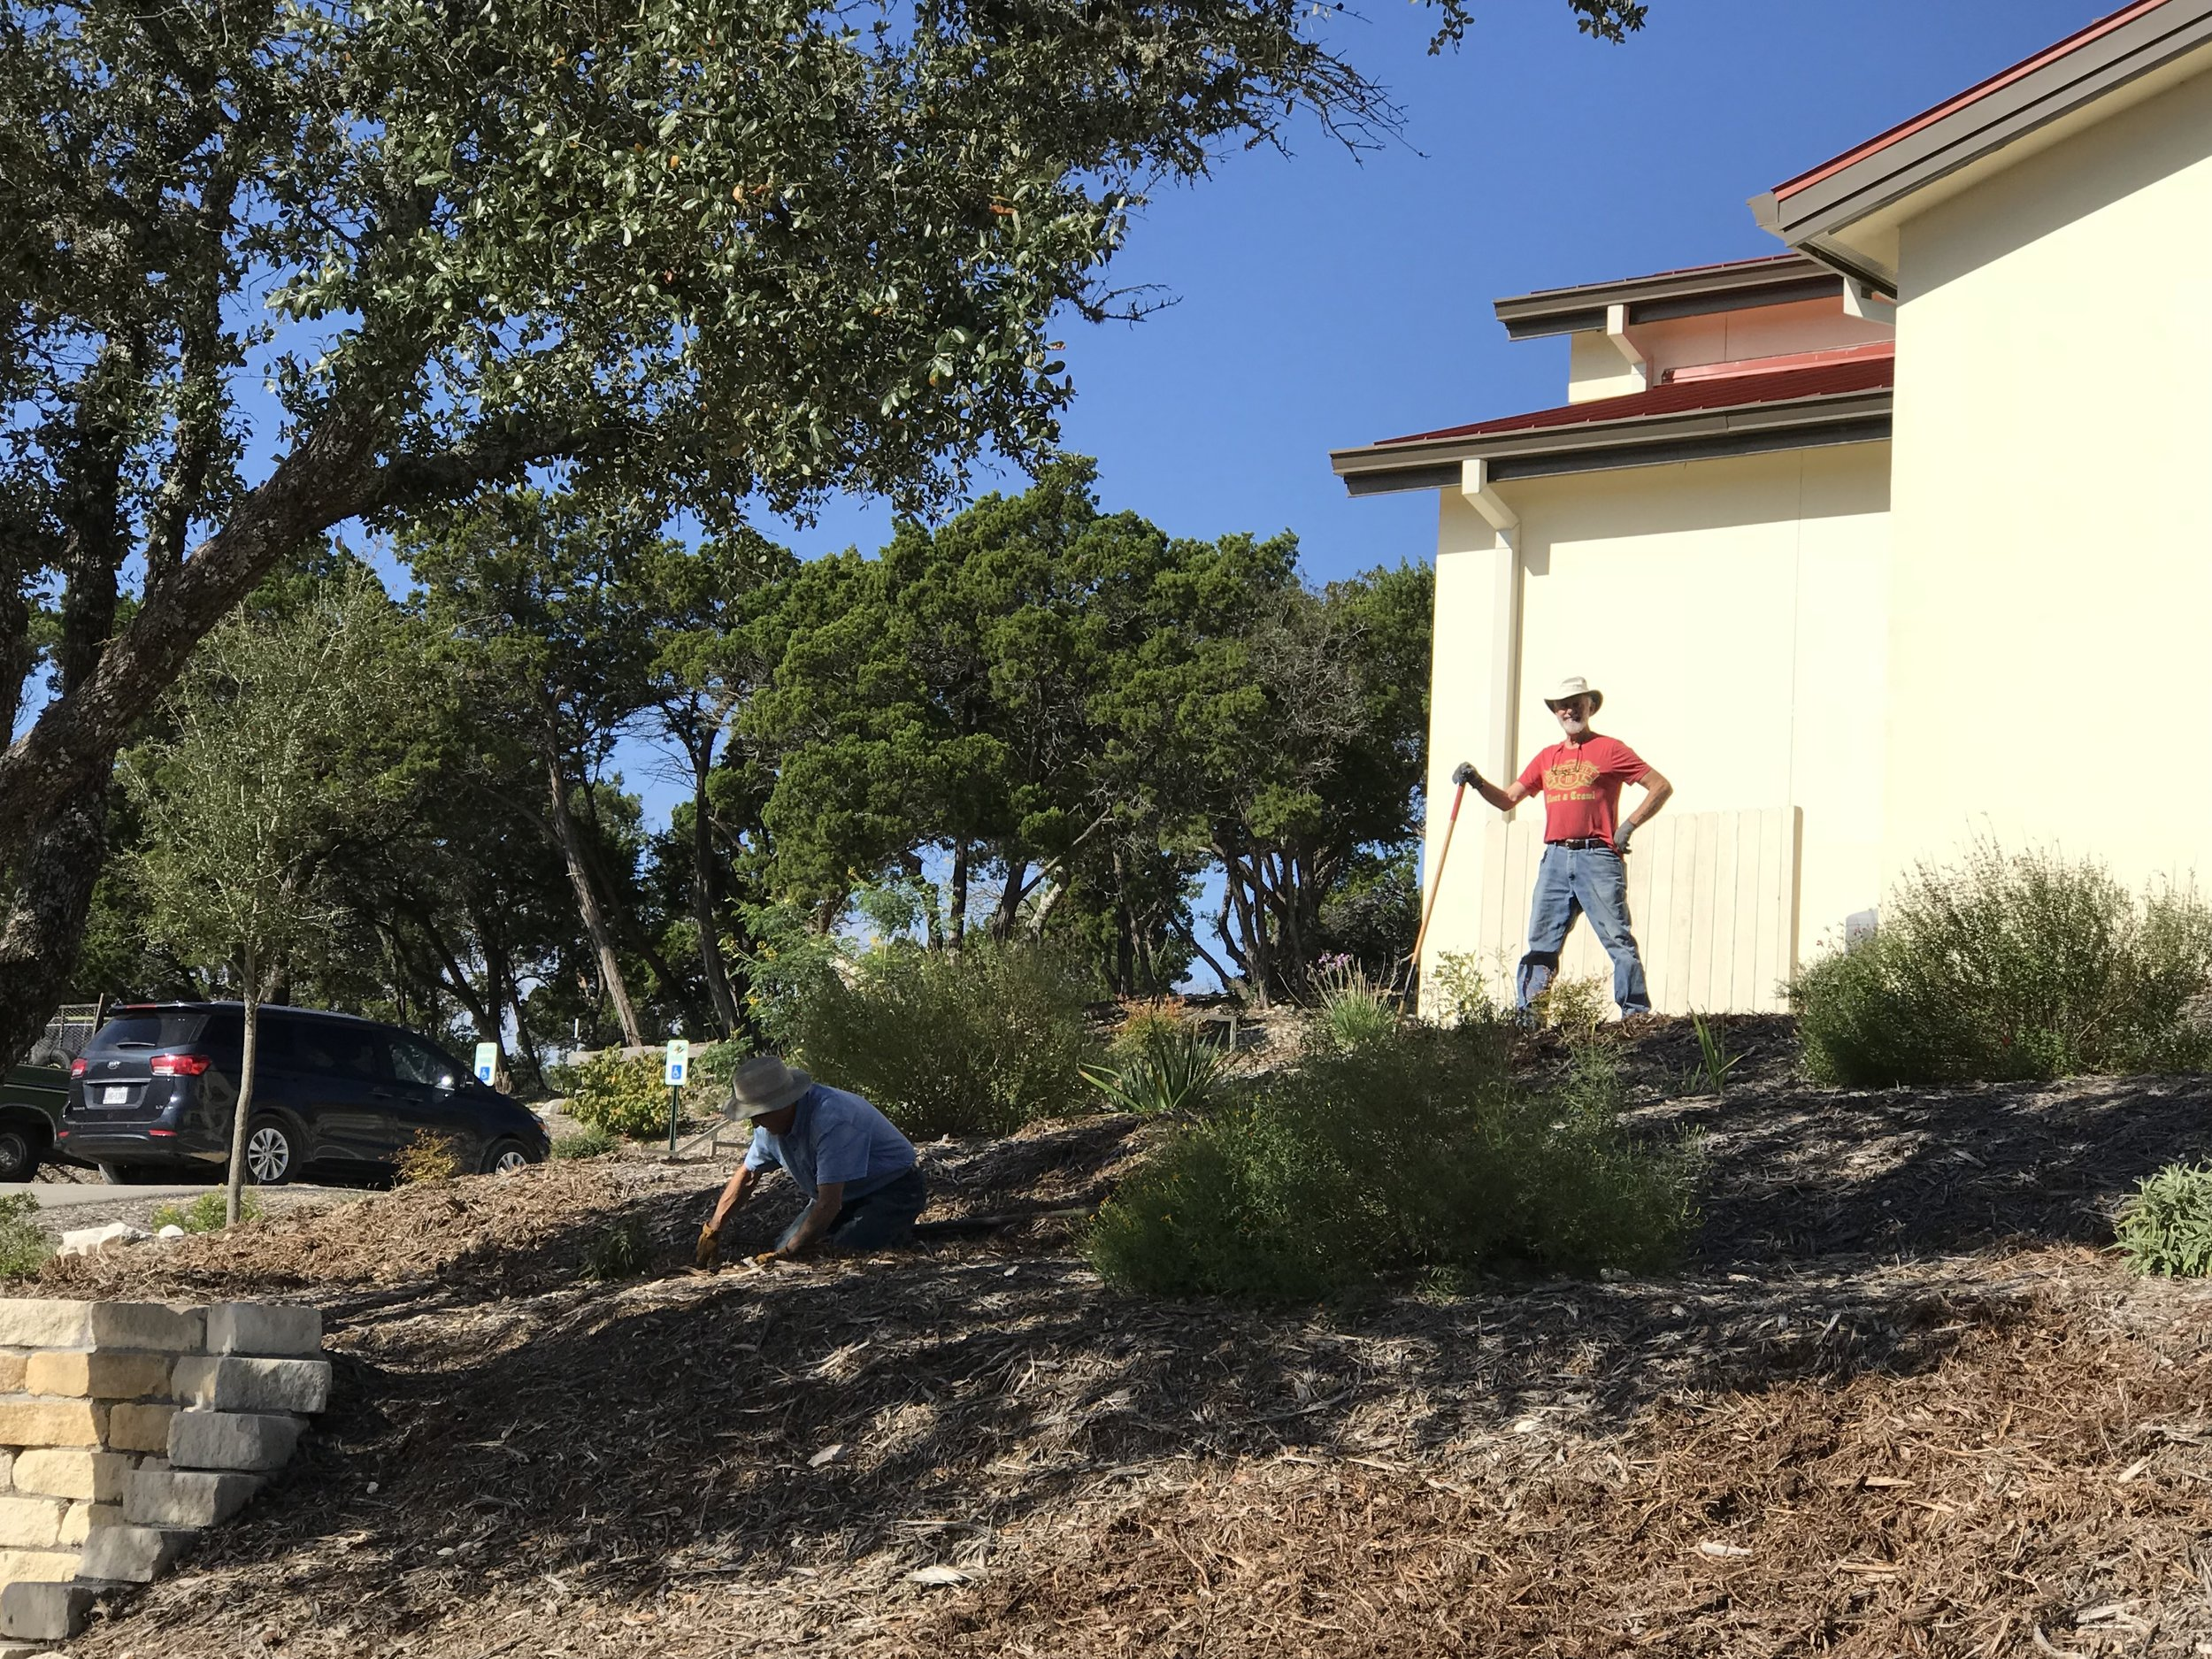 Kathleen, Steve Magdich and Tim Barker are the gardening team that is responsible for the beautiful landscaping around the O'Callaghan Divine Mercy Center. And Dennis Brown's efforts help to keep the plants alive during the Texas droughts.